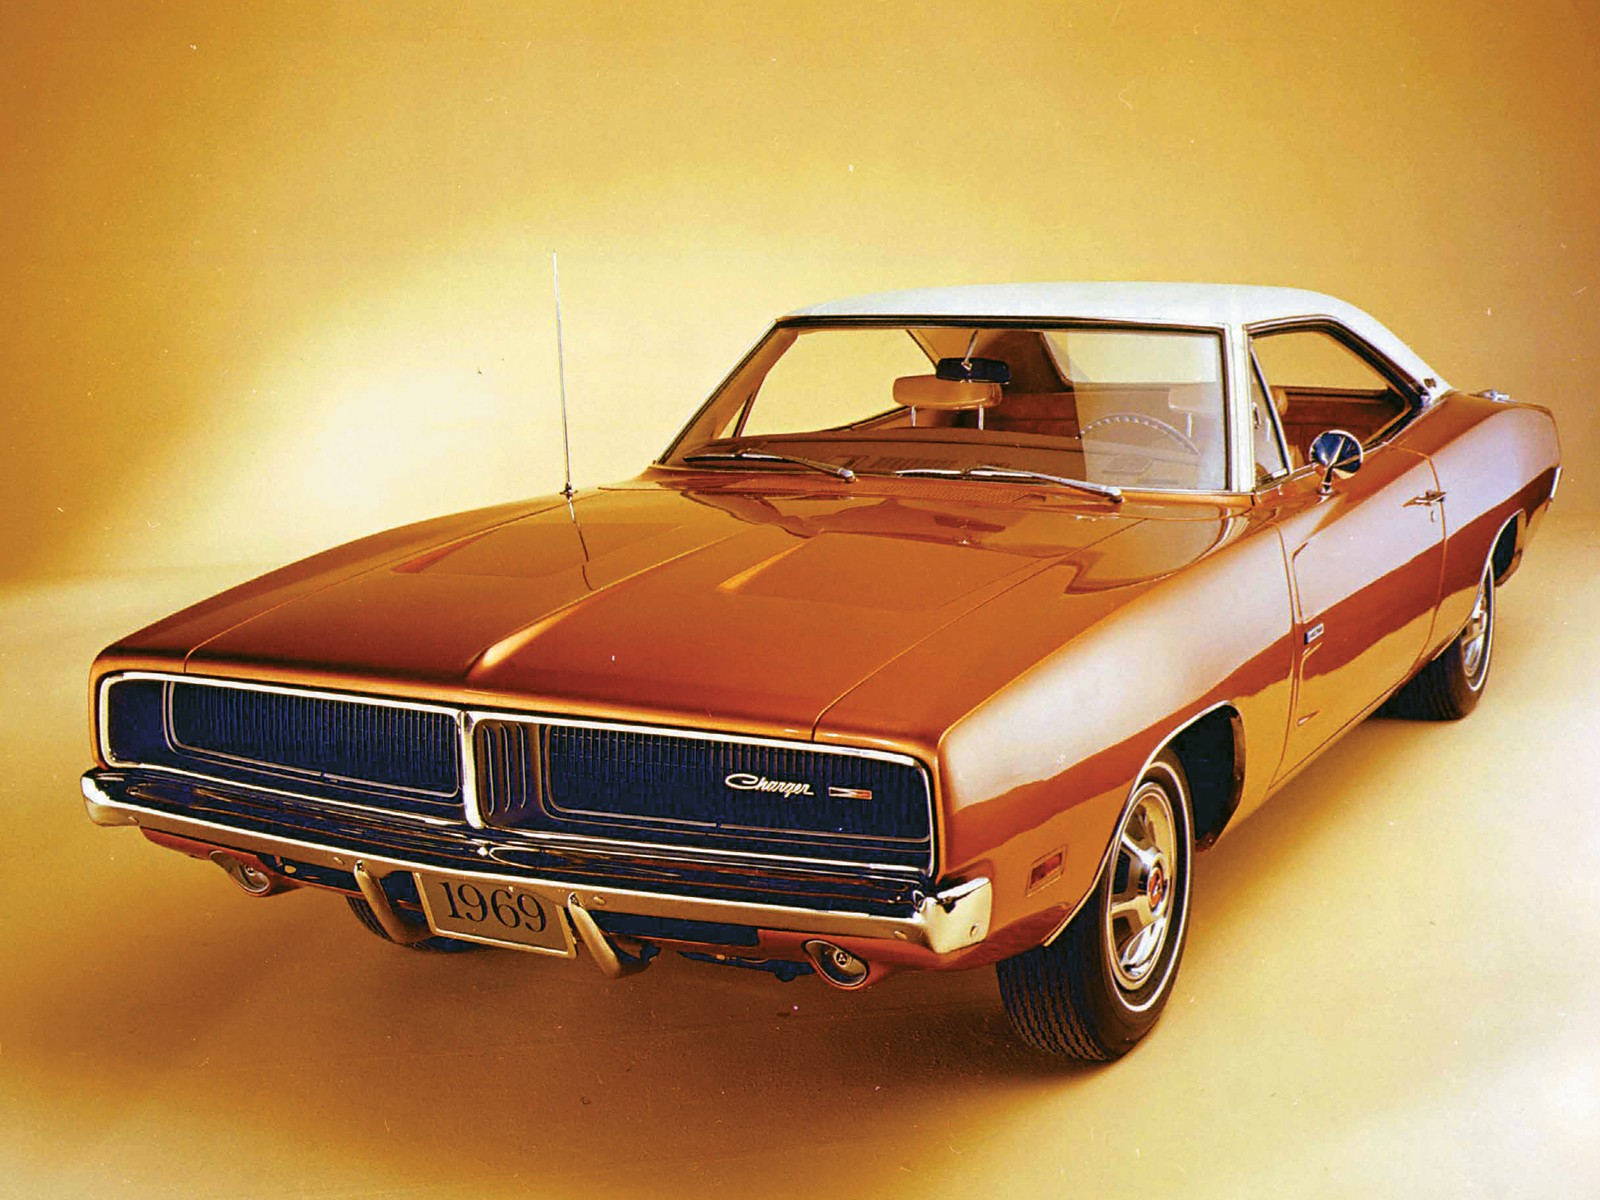 Dodge Charger RT 1969. 1600 x 1200